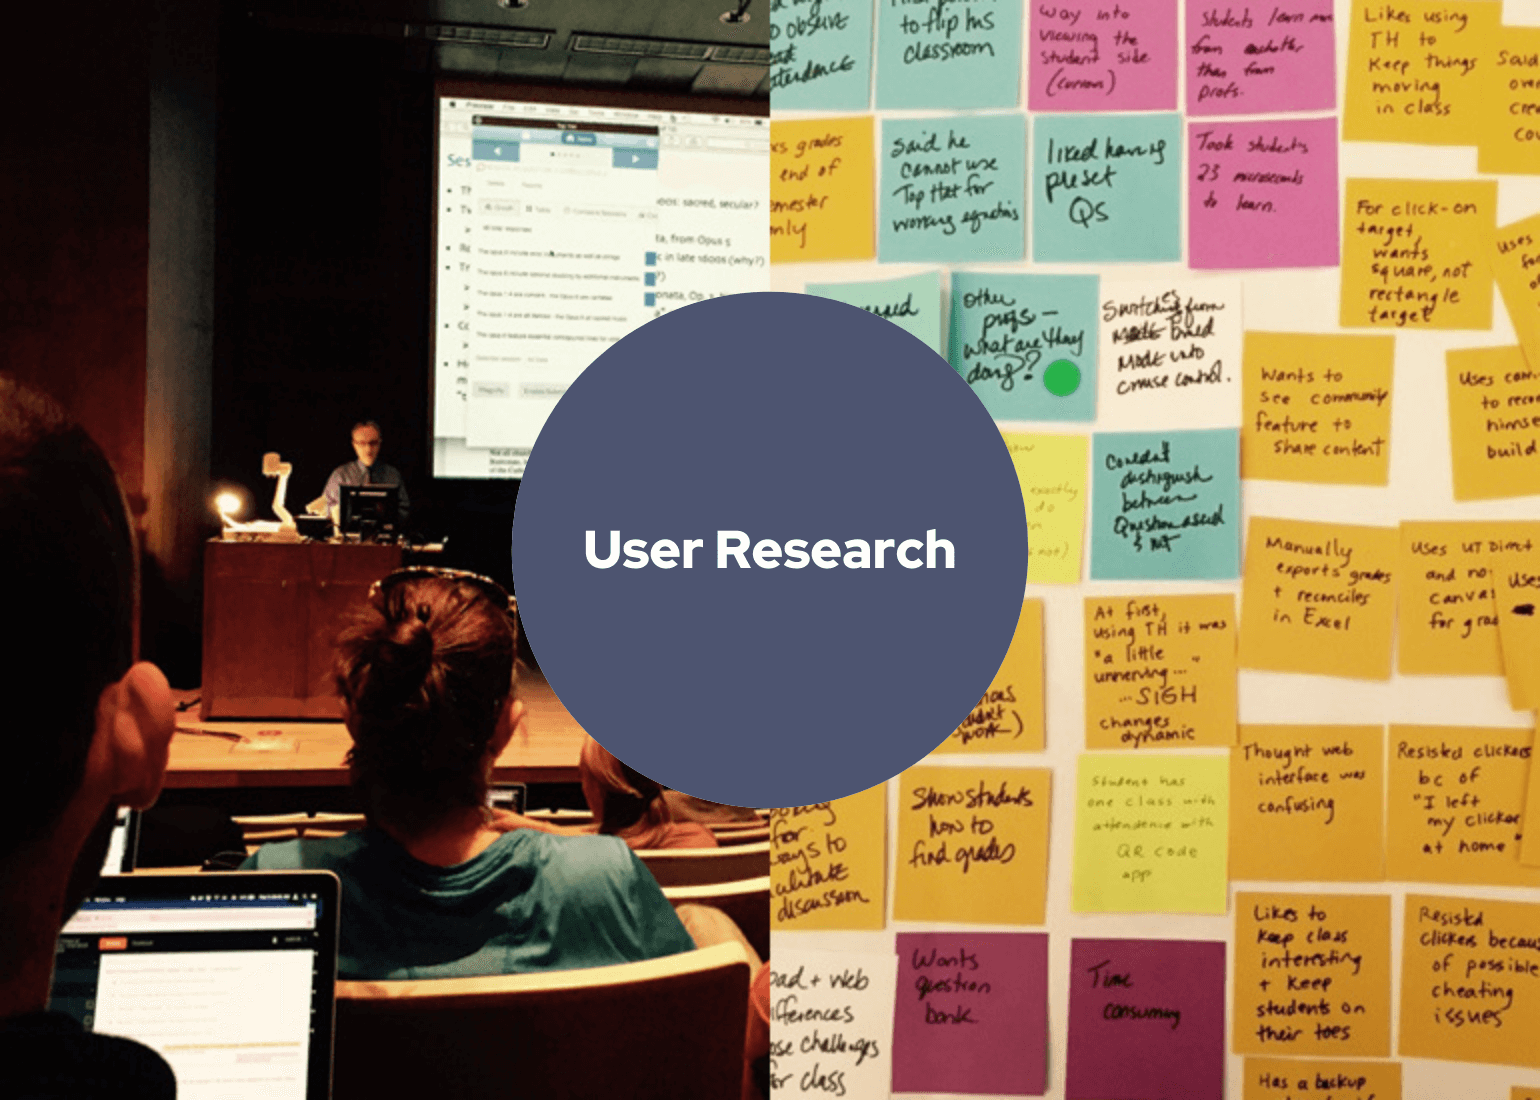 User Research. Man giving lecture at podium with audience and. Post-it notes on a whiteboard.